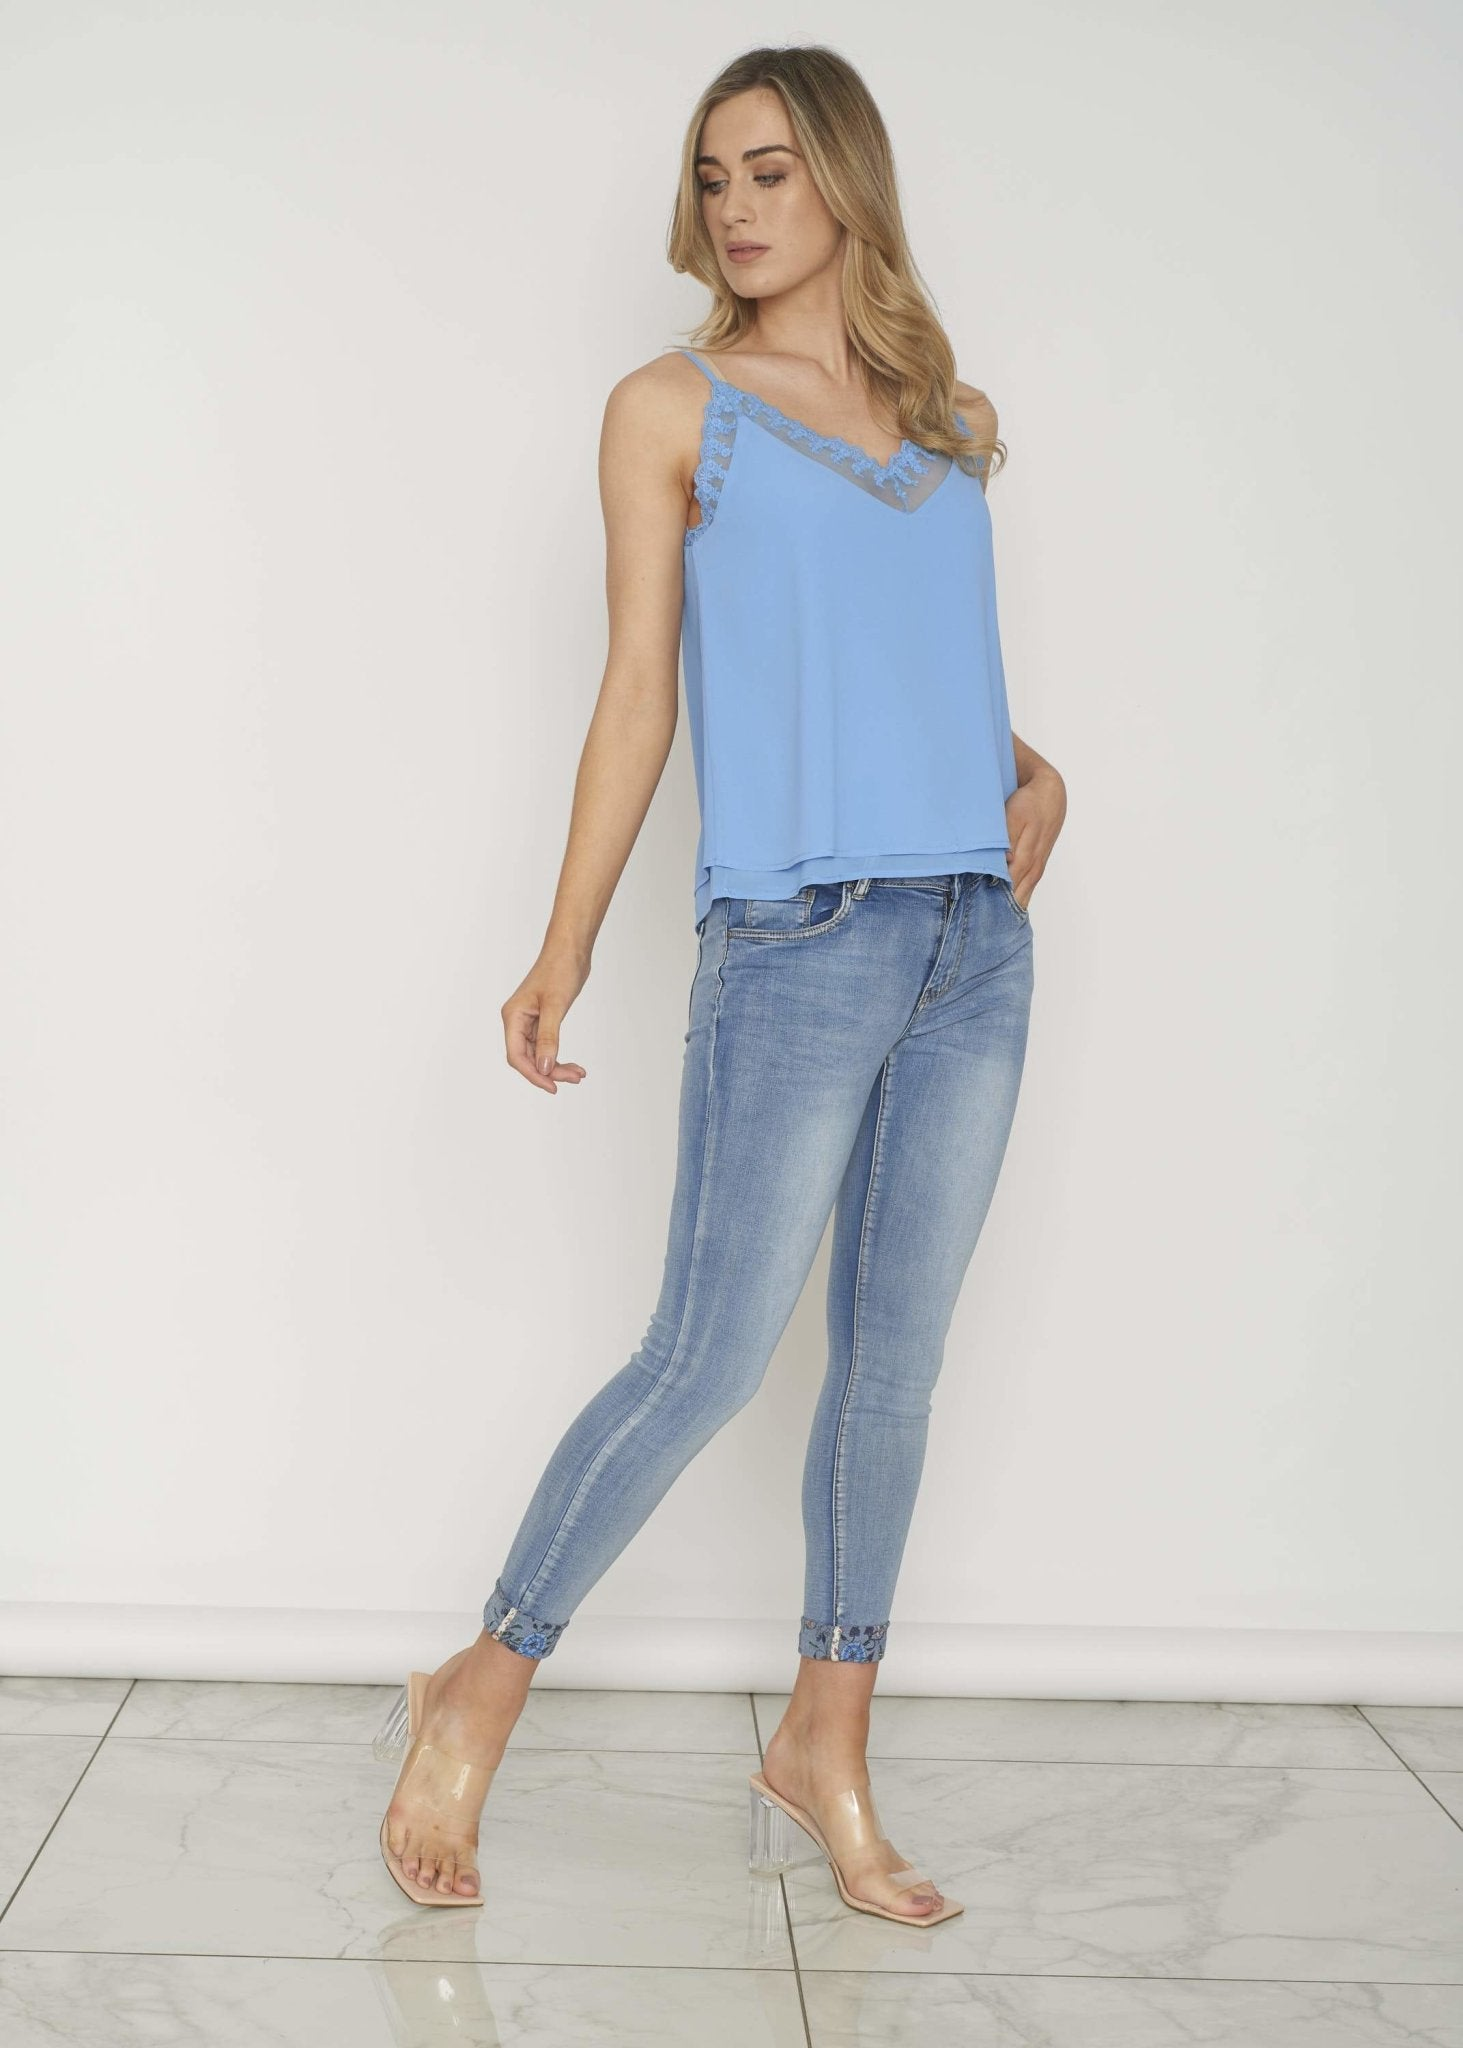 Ally Lace Trim Cami In Blue - The Walk in Wardrobe